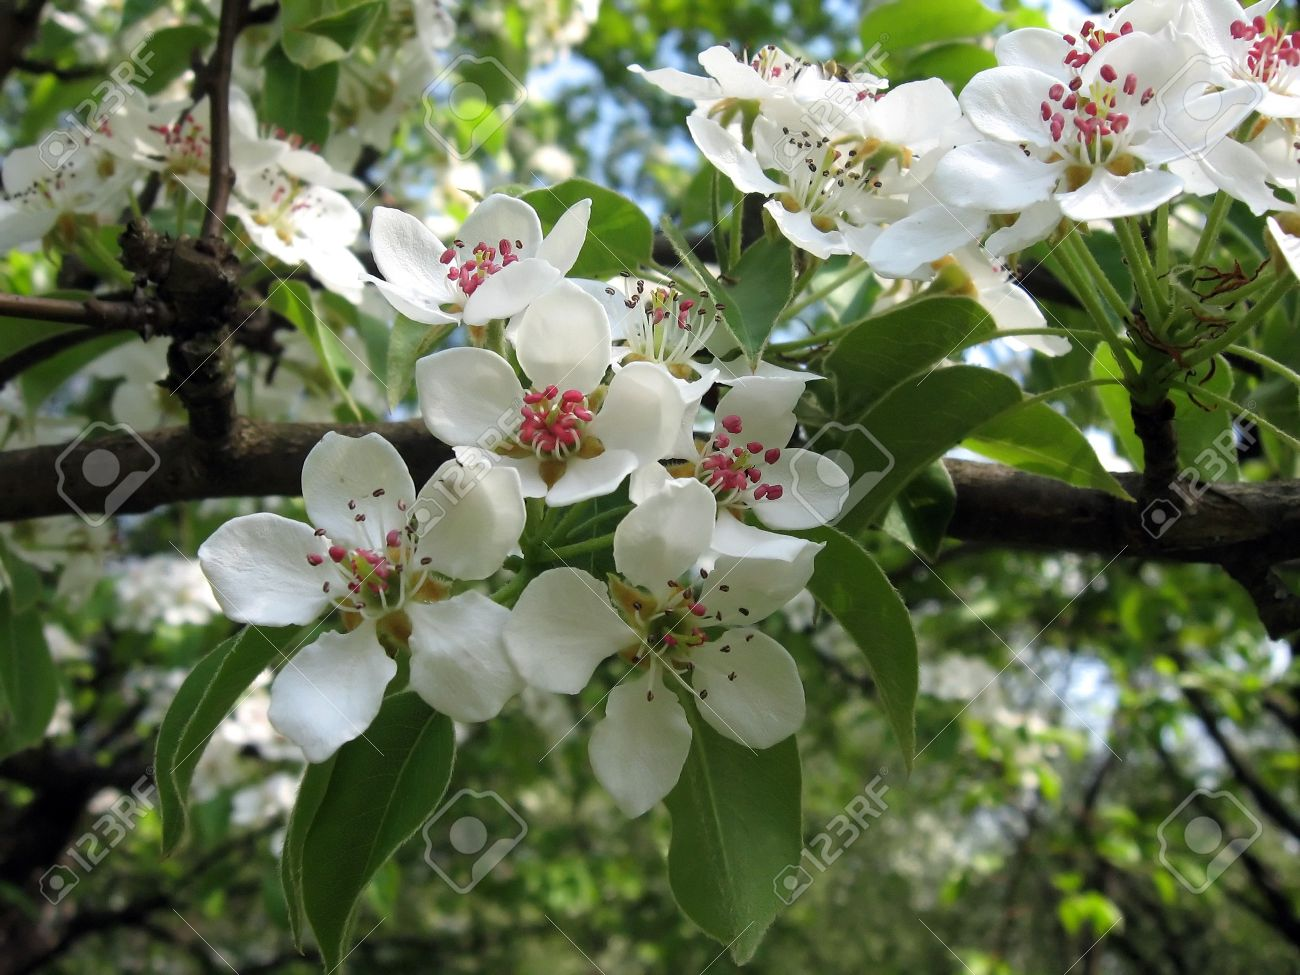 Fruit tree blooms white flowers in spring stock photo picture and fruit tree blooms white flowers in spring stock photo 7066658 mightylinksfo